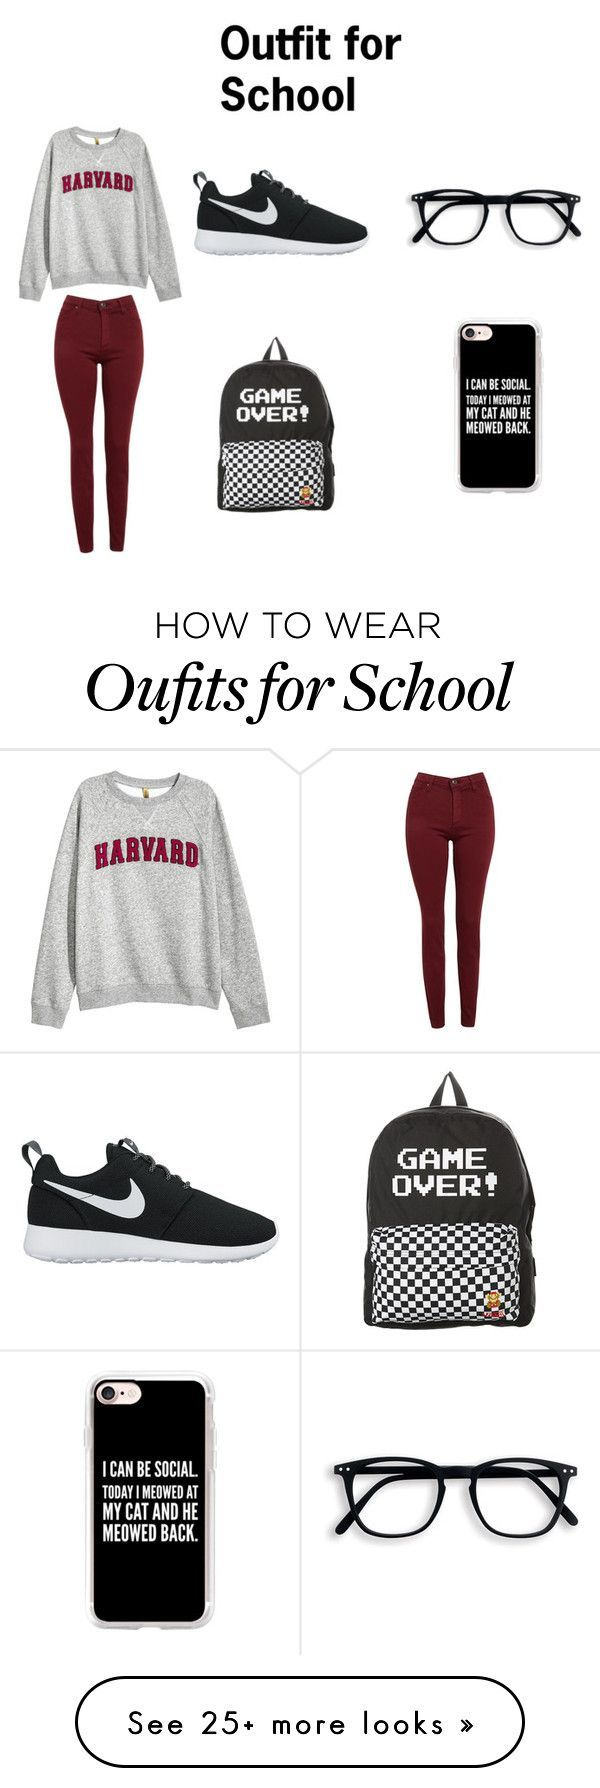 2017 06 fashionplaytes design studio -  Outfit For School By Ava Josephine On Polyvore Featuring H M Ag Adriano